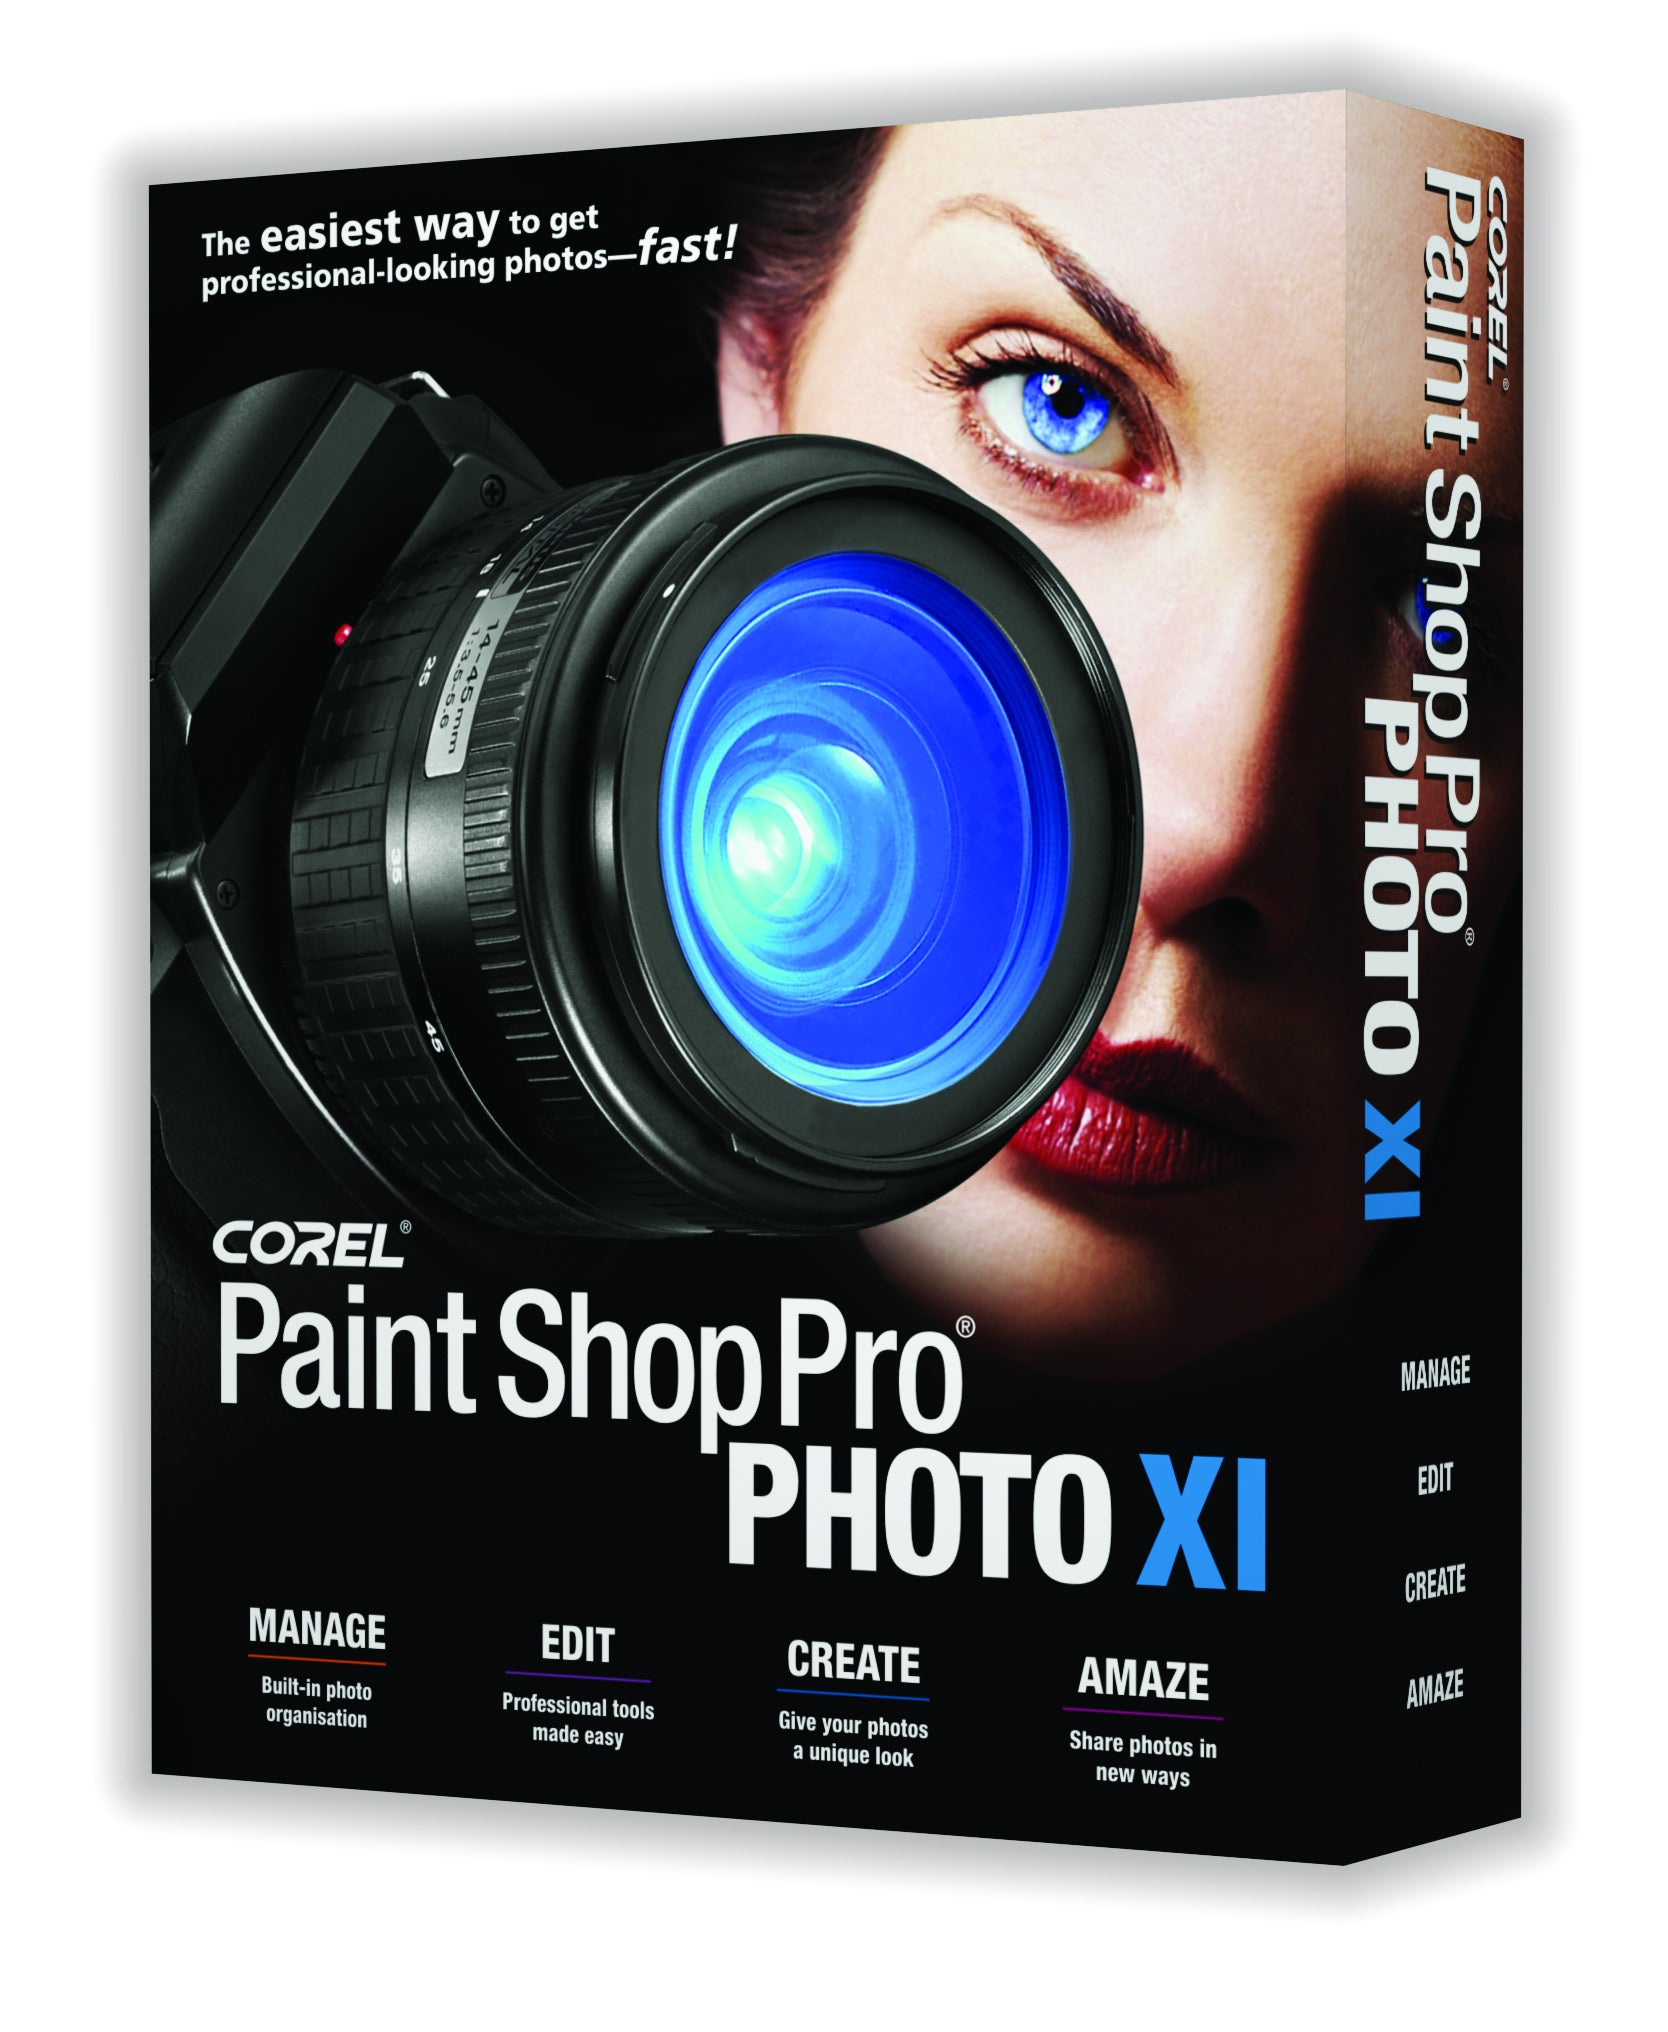 Corel paint shop pro photo xi announced what digital camera for Paint pros